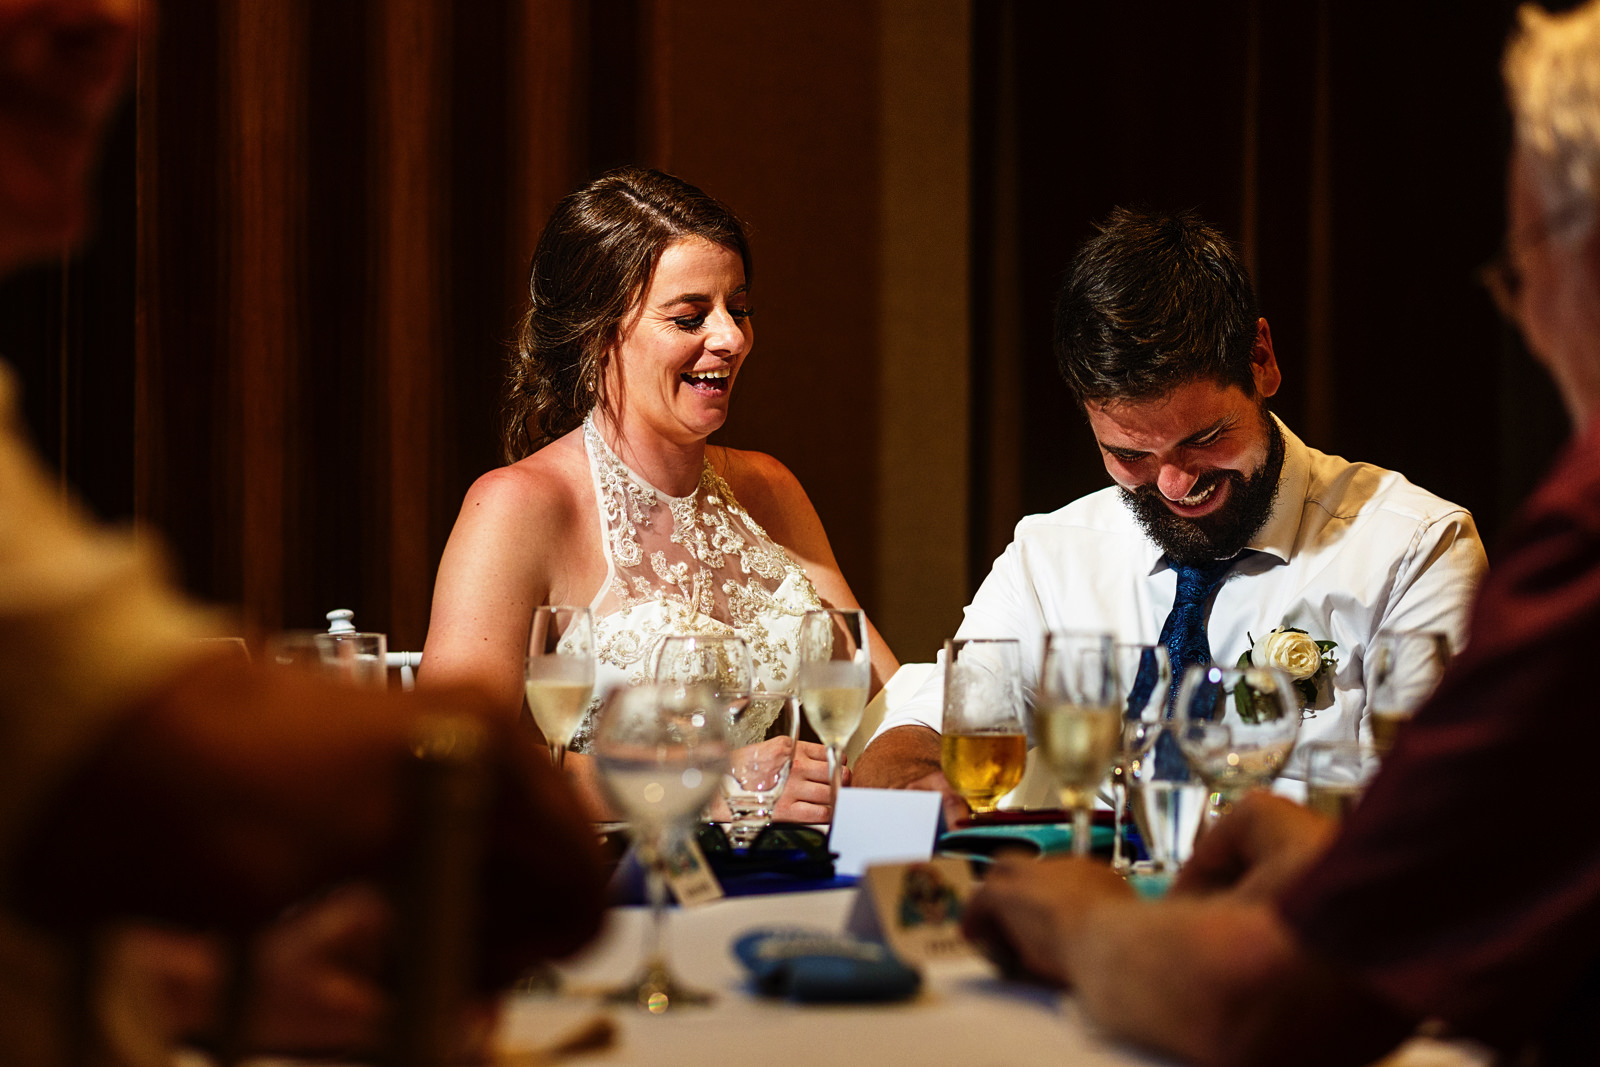 Groom and bride laughing during the speeches at the dinner table.